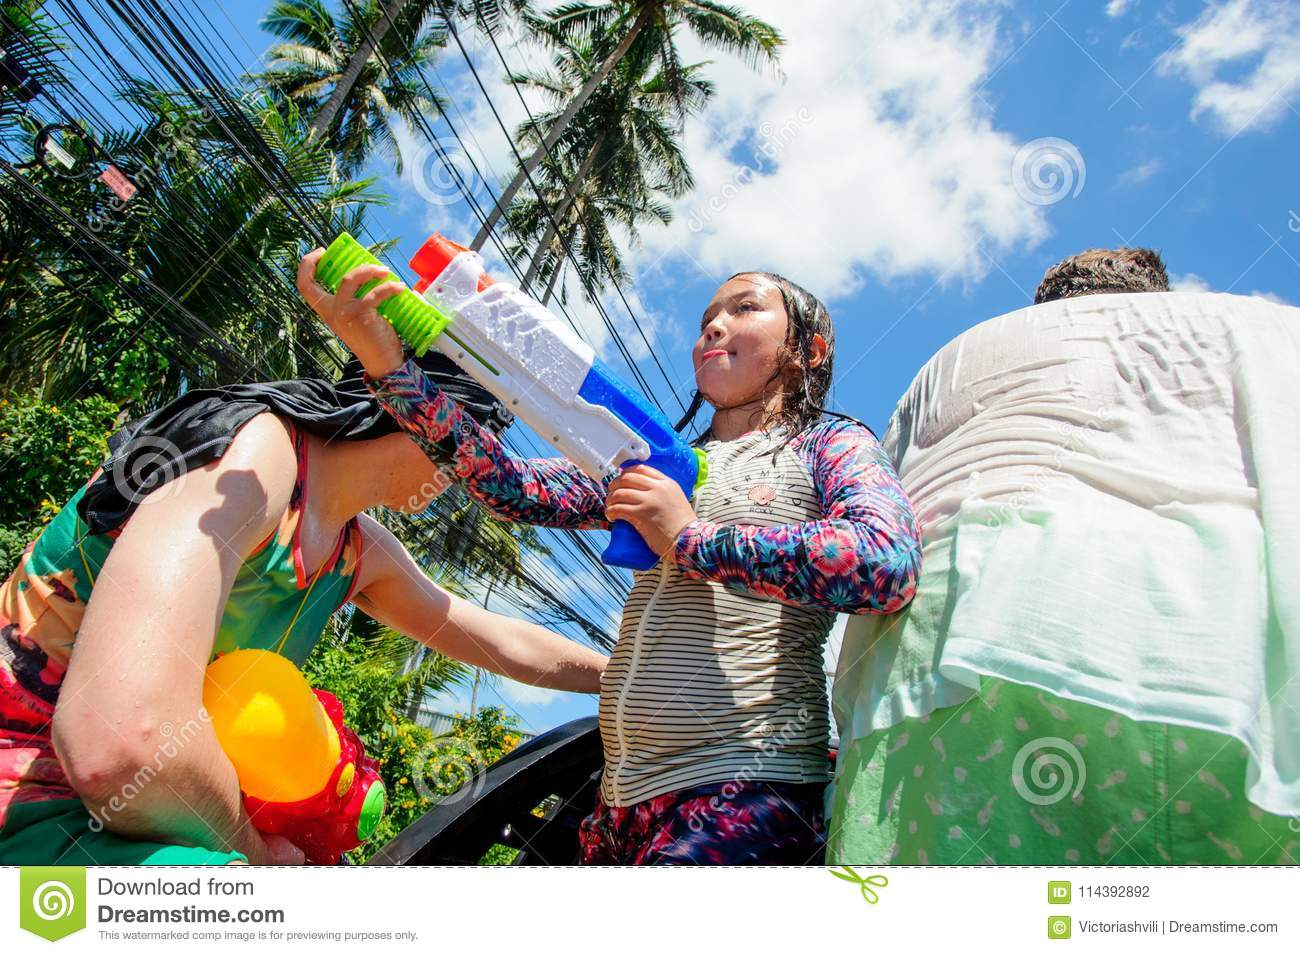 Koh Samui, Thailand - April 13, 2018: Songkran Party - the Thai New Year Festival. People celebrating together